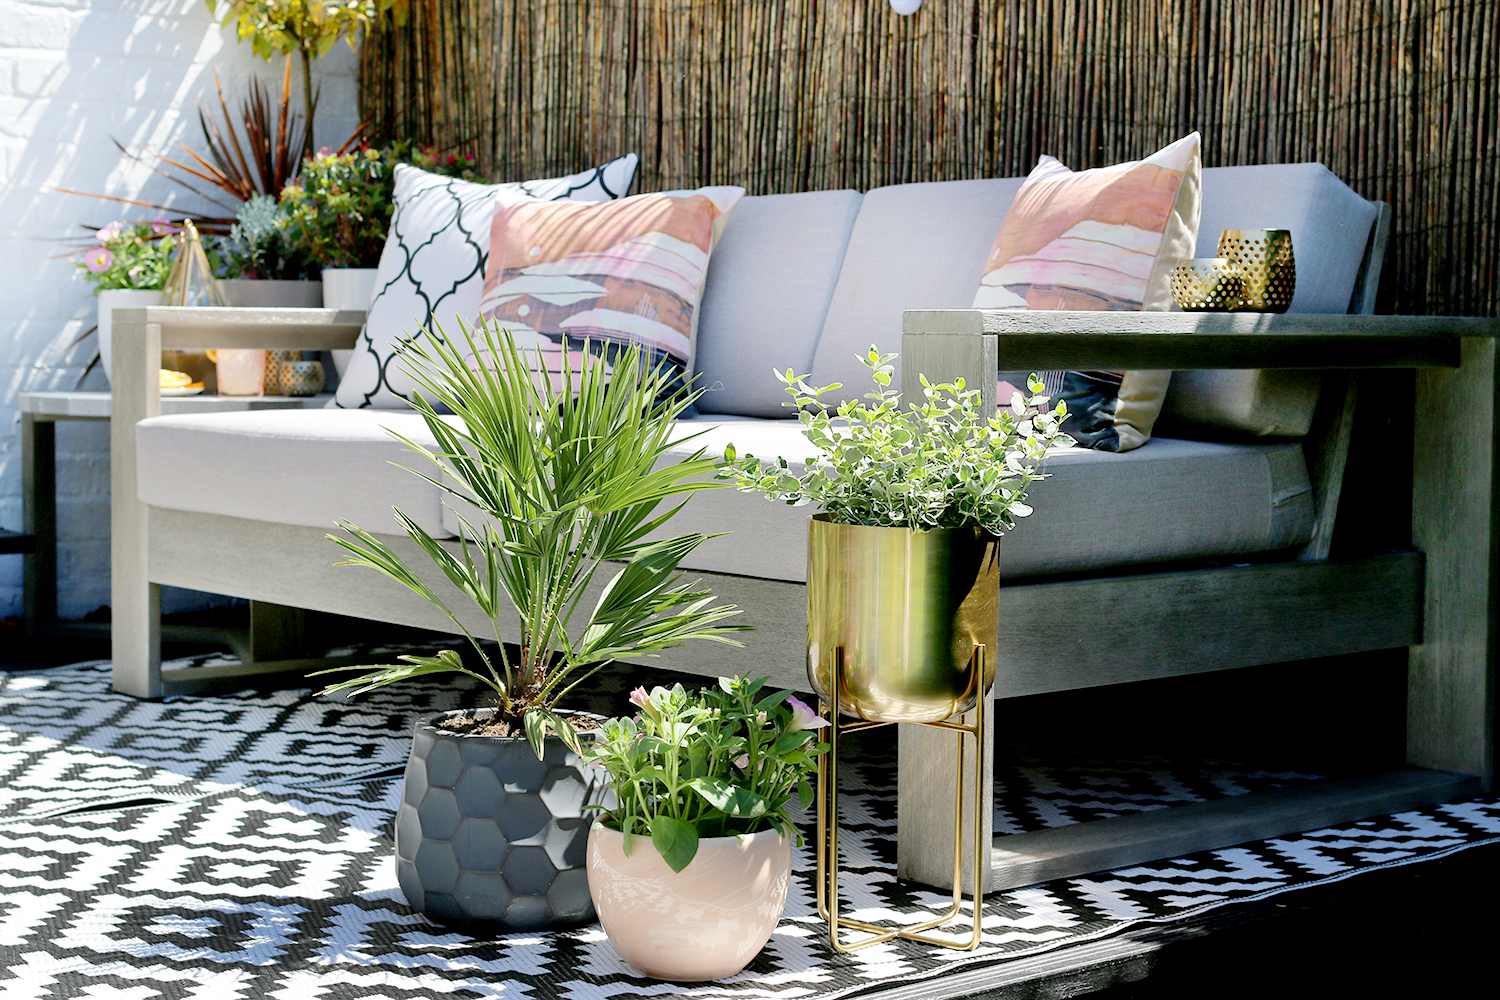 Getting the look eclectic boho glam garden design swoon for Garden design instagram